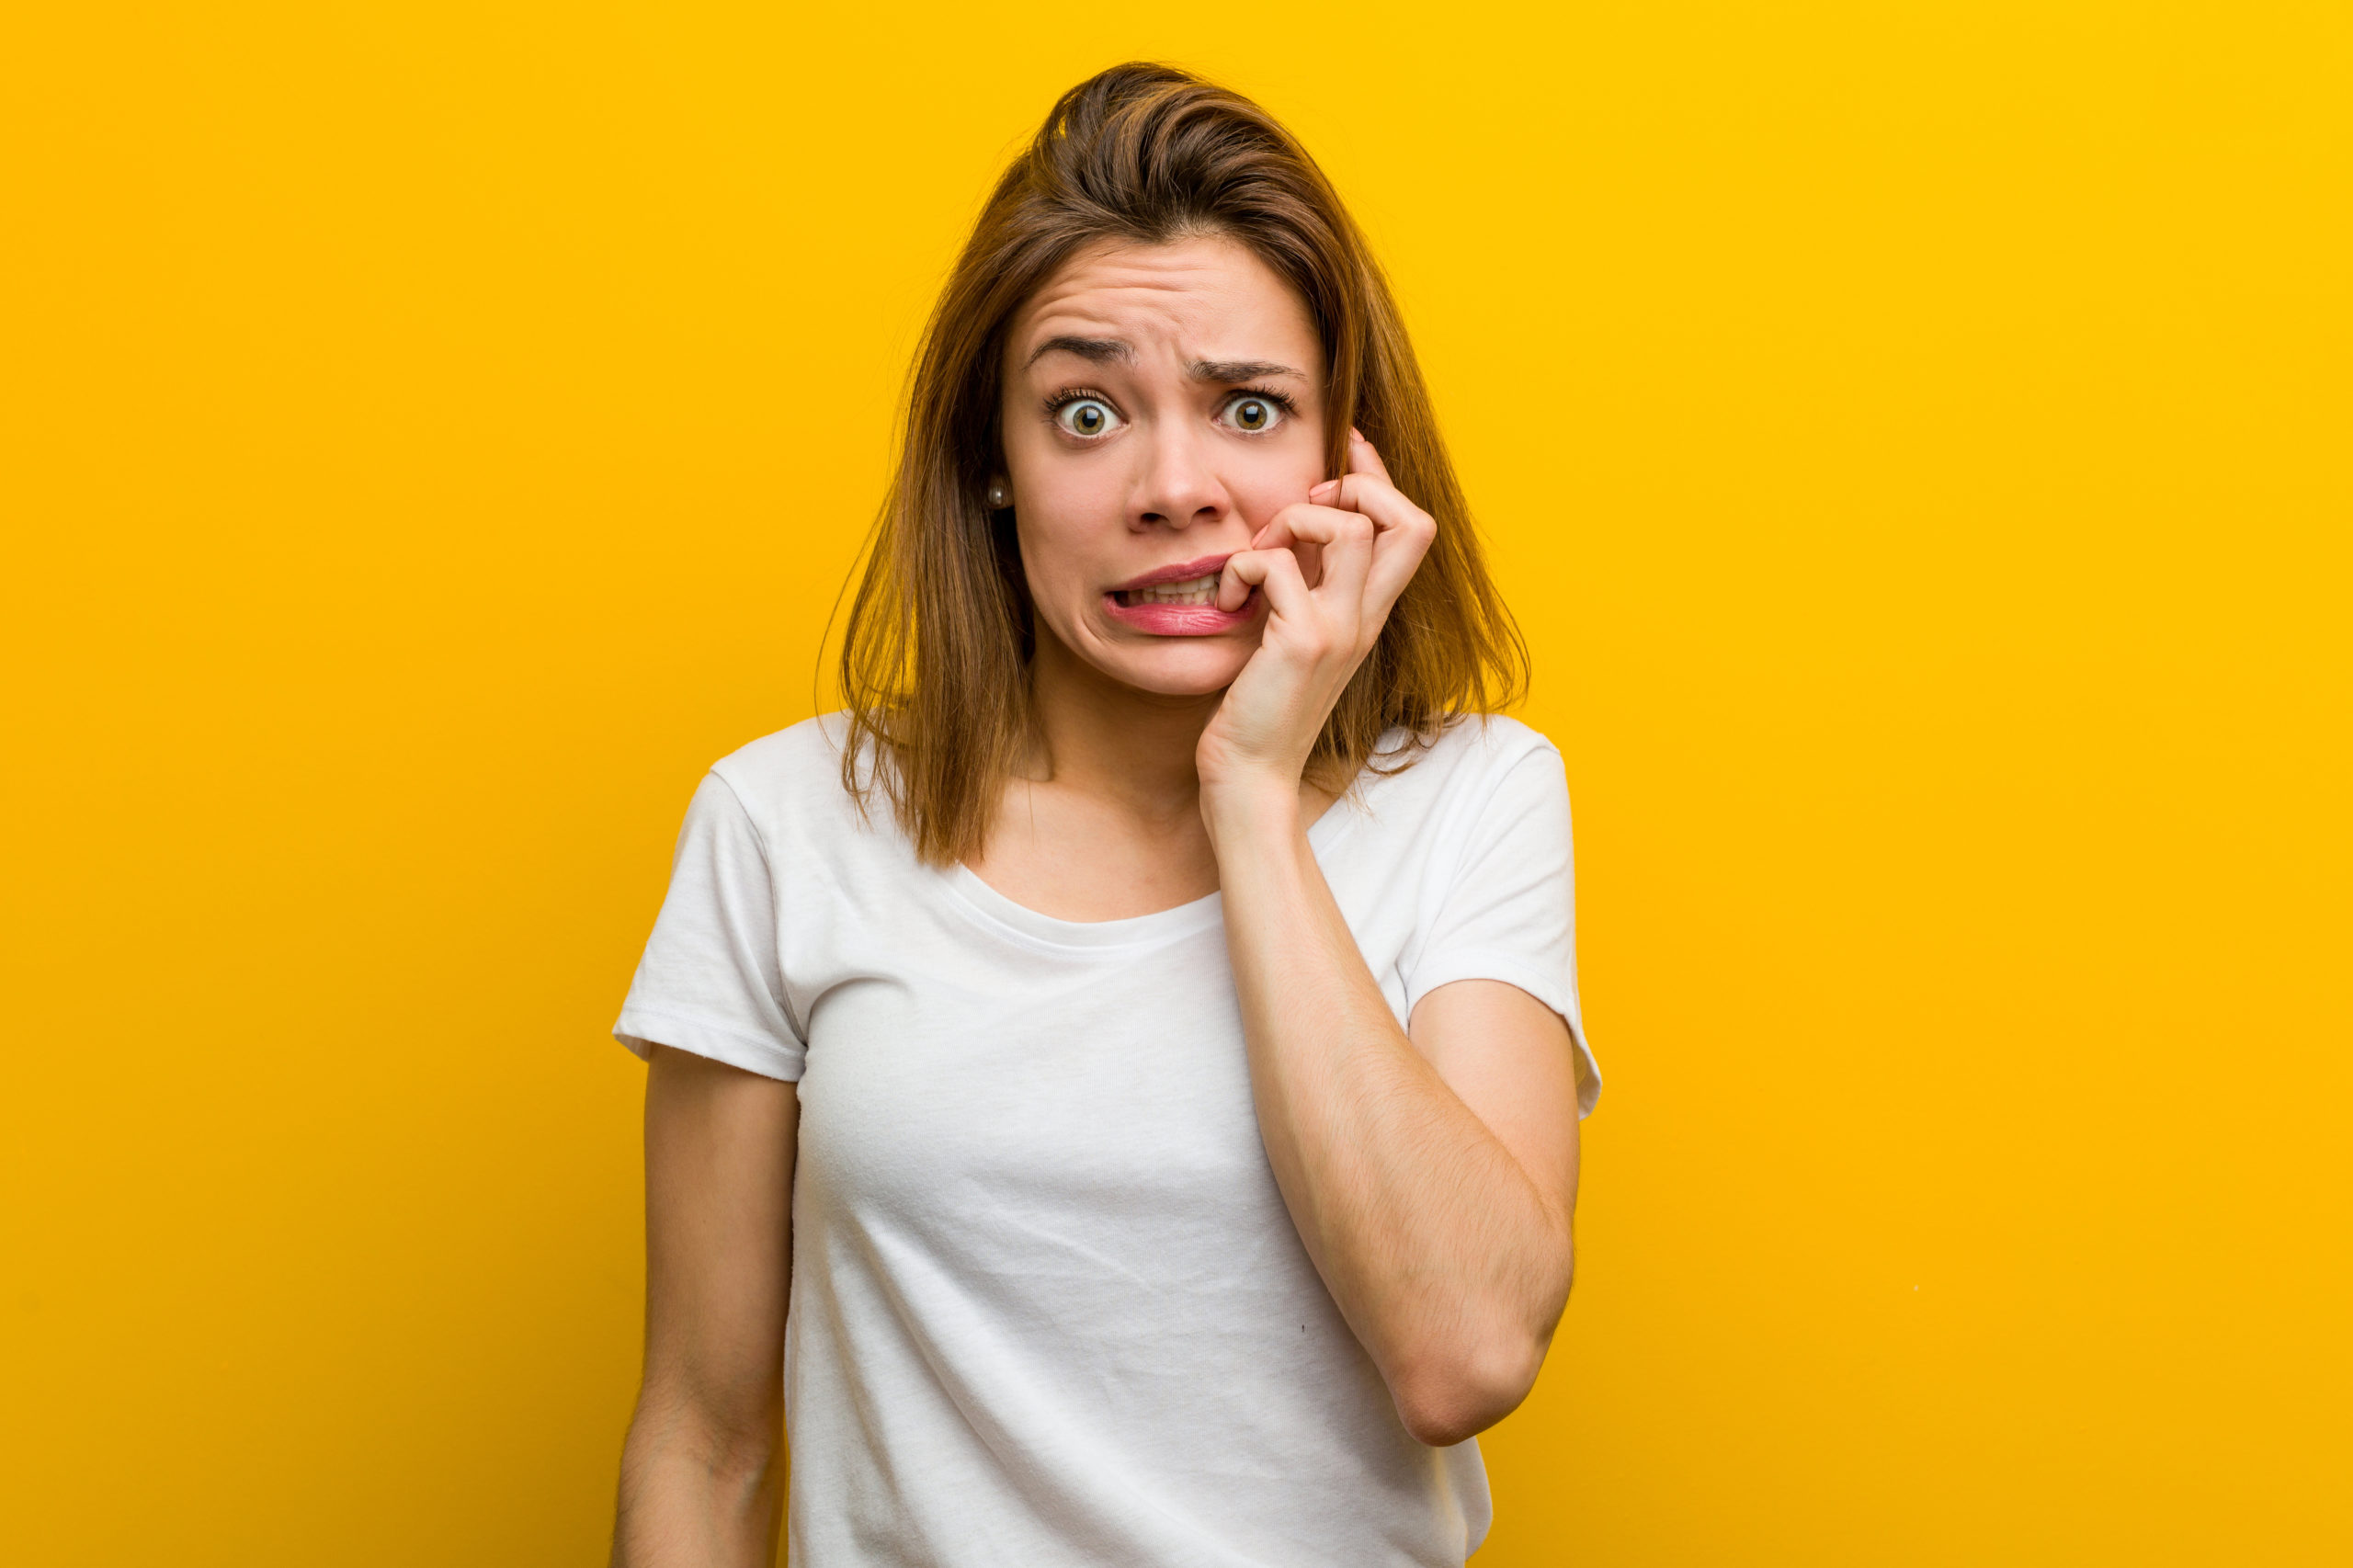 What Can I Do If I Am Too Afraid To Visit The Dentist? kensington court clinic